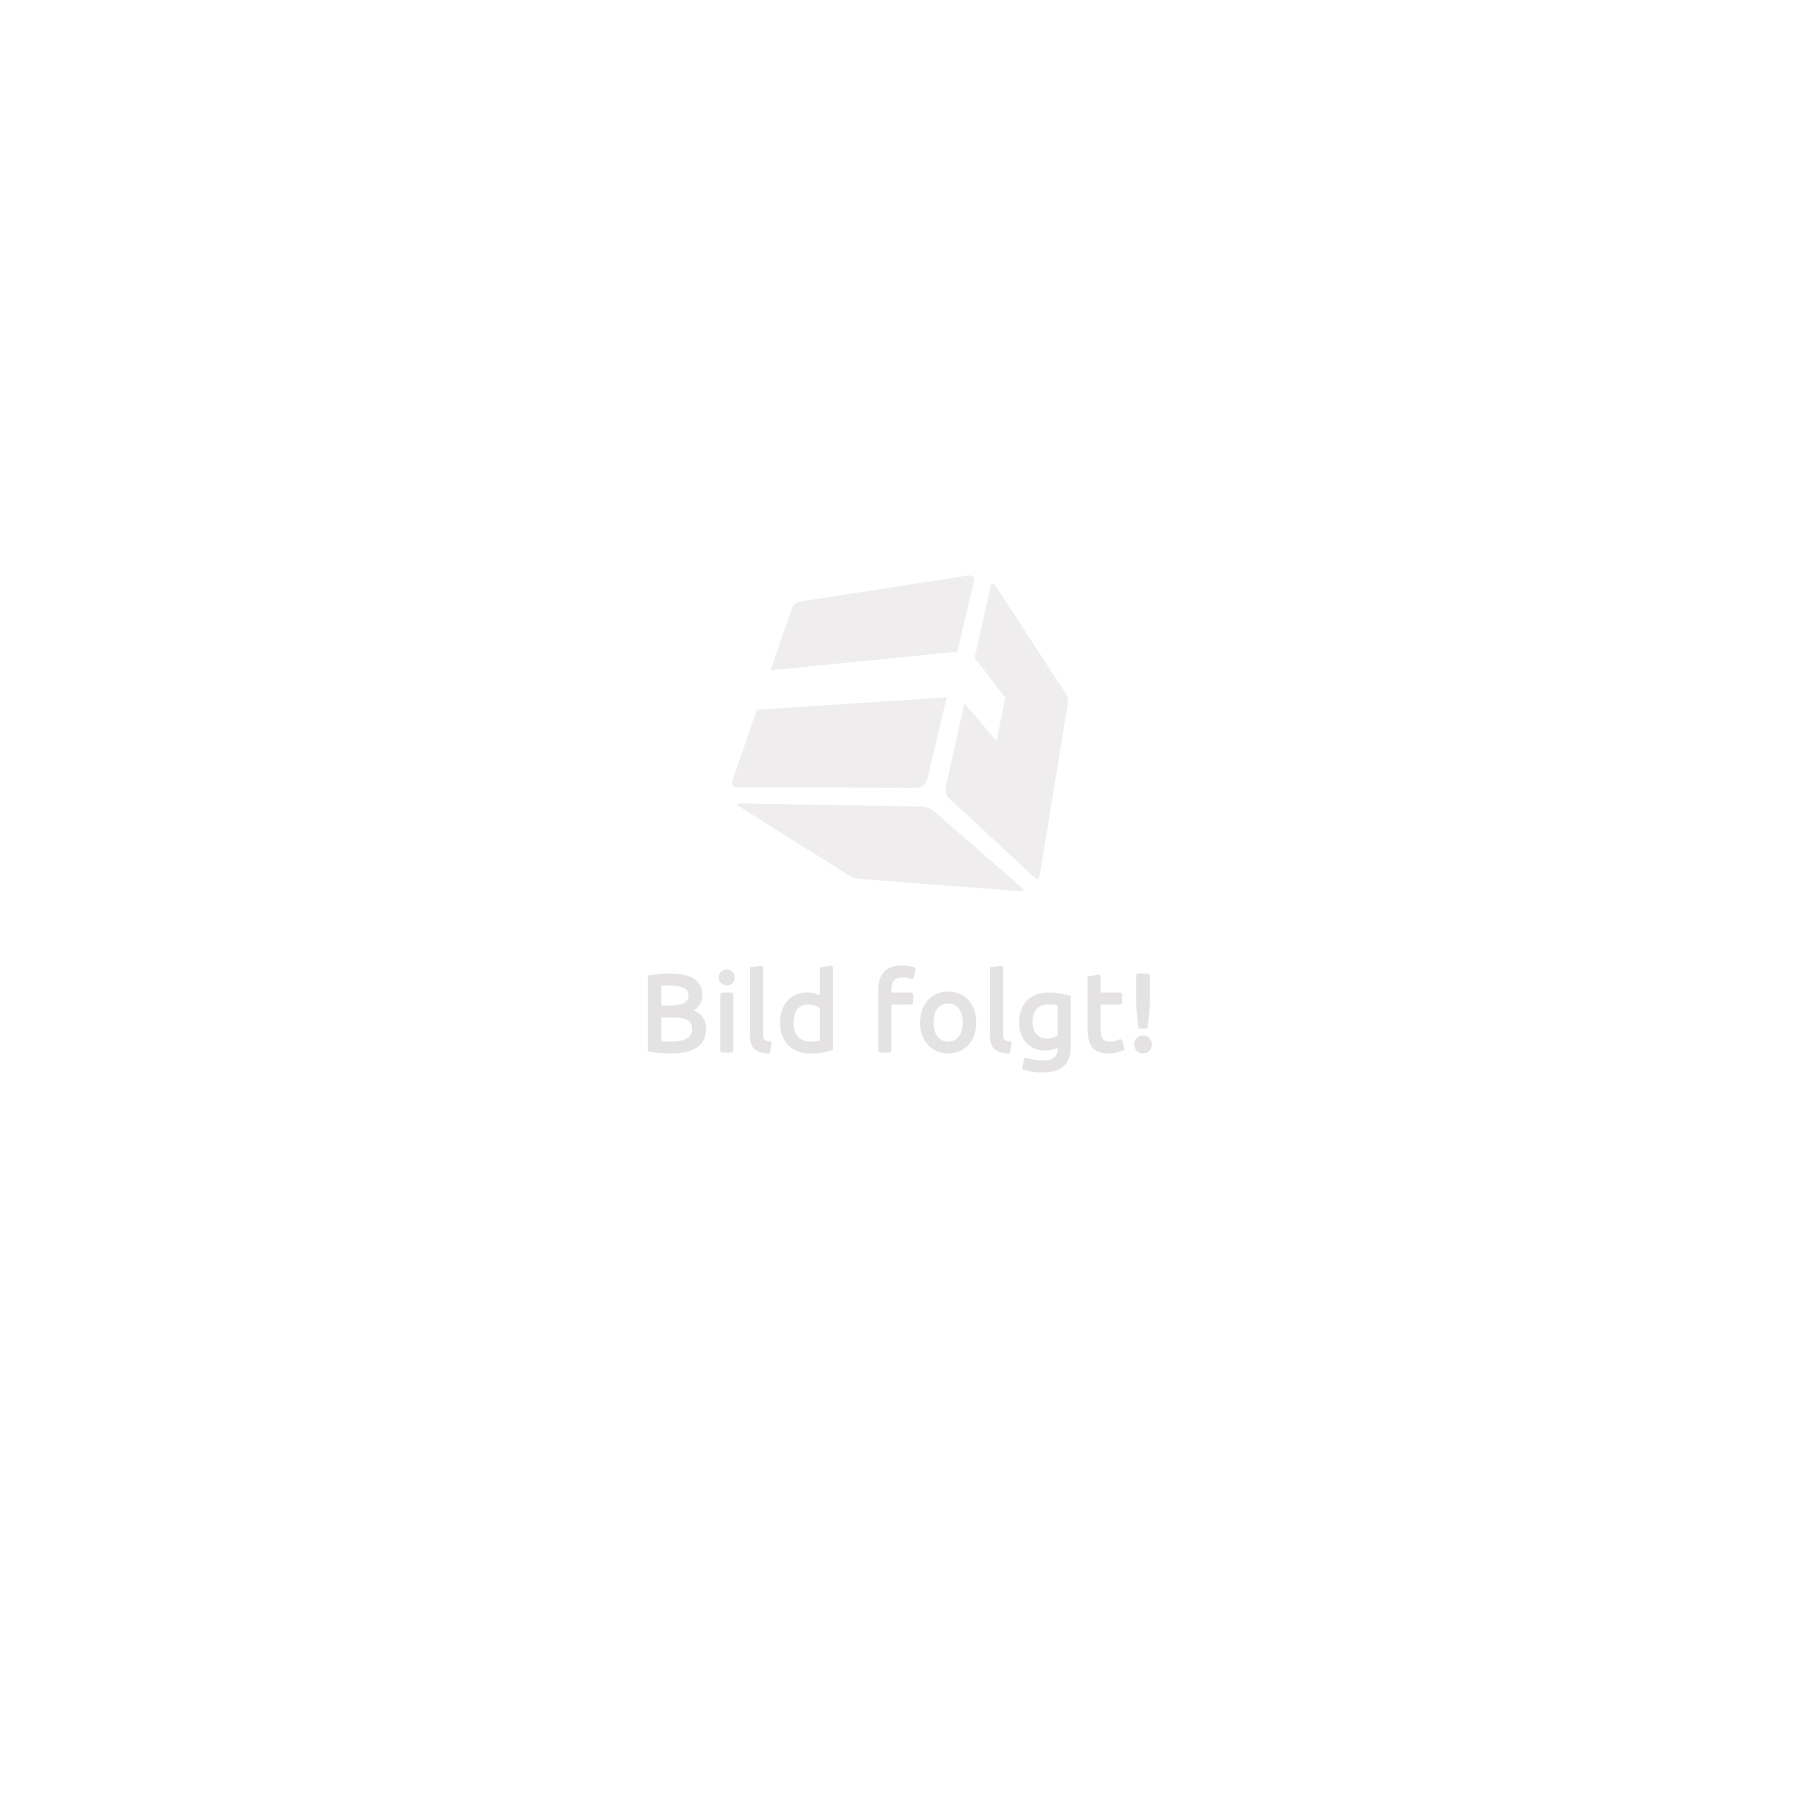 Hundetransportbox single mit gerader Rückwand 54 x 69 x 50 cm